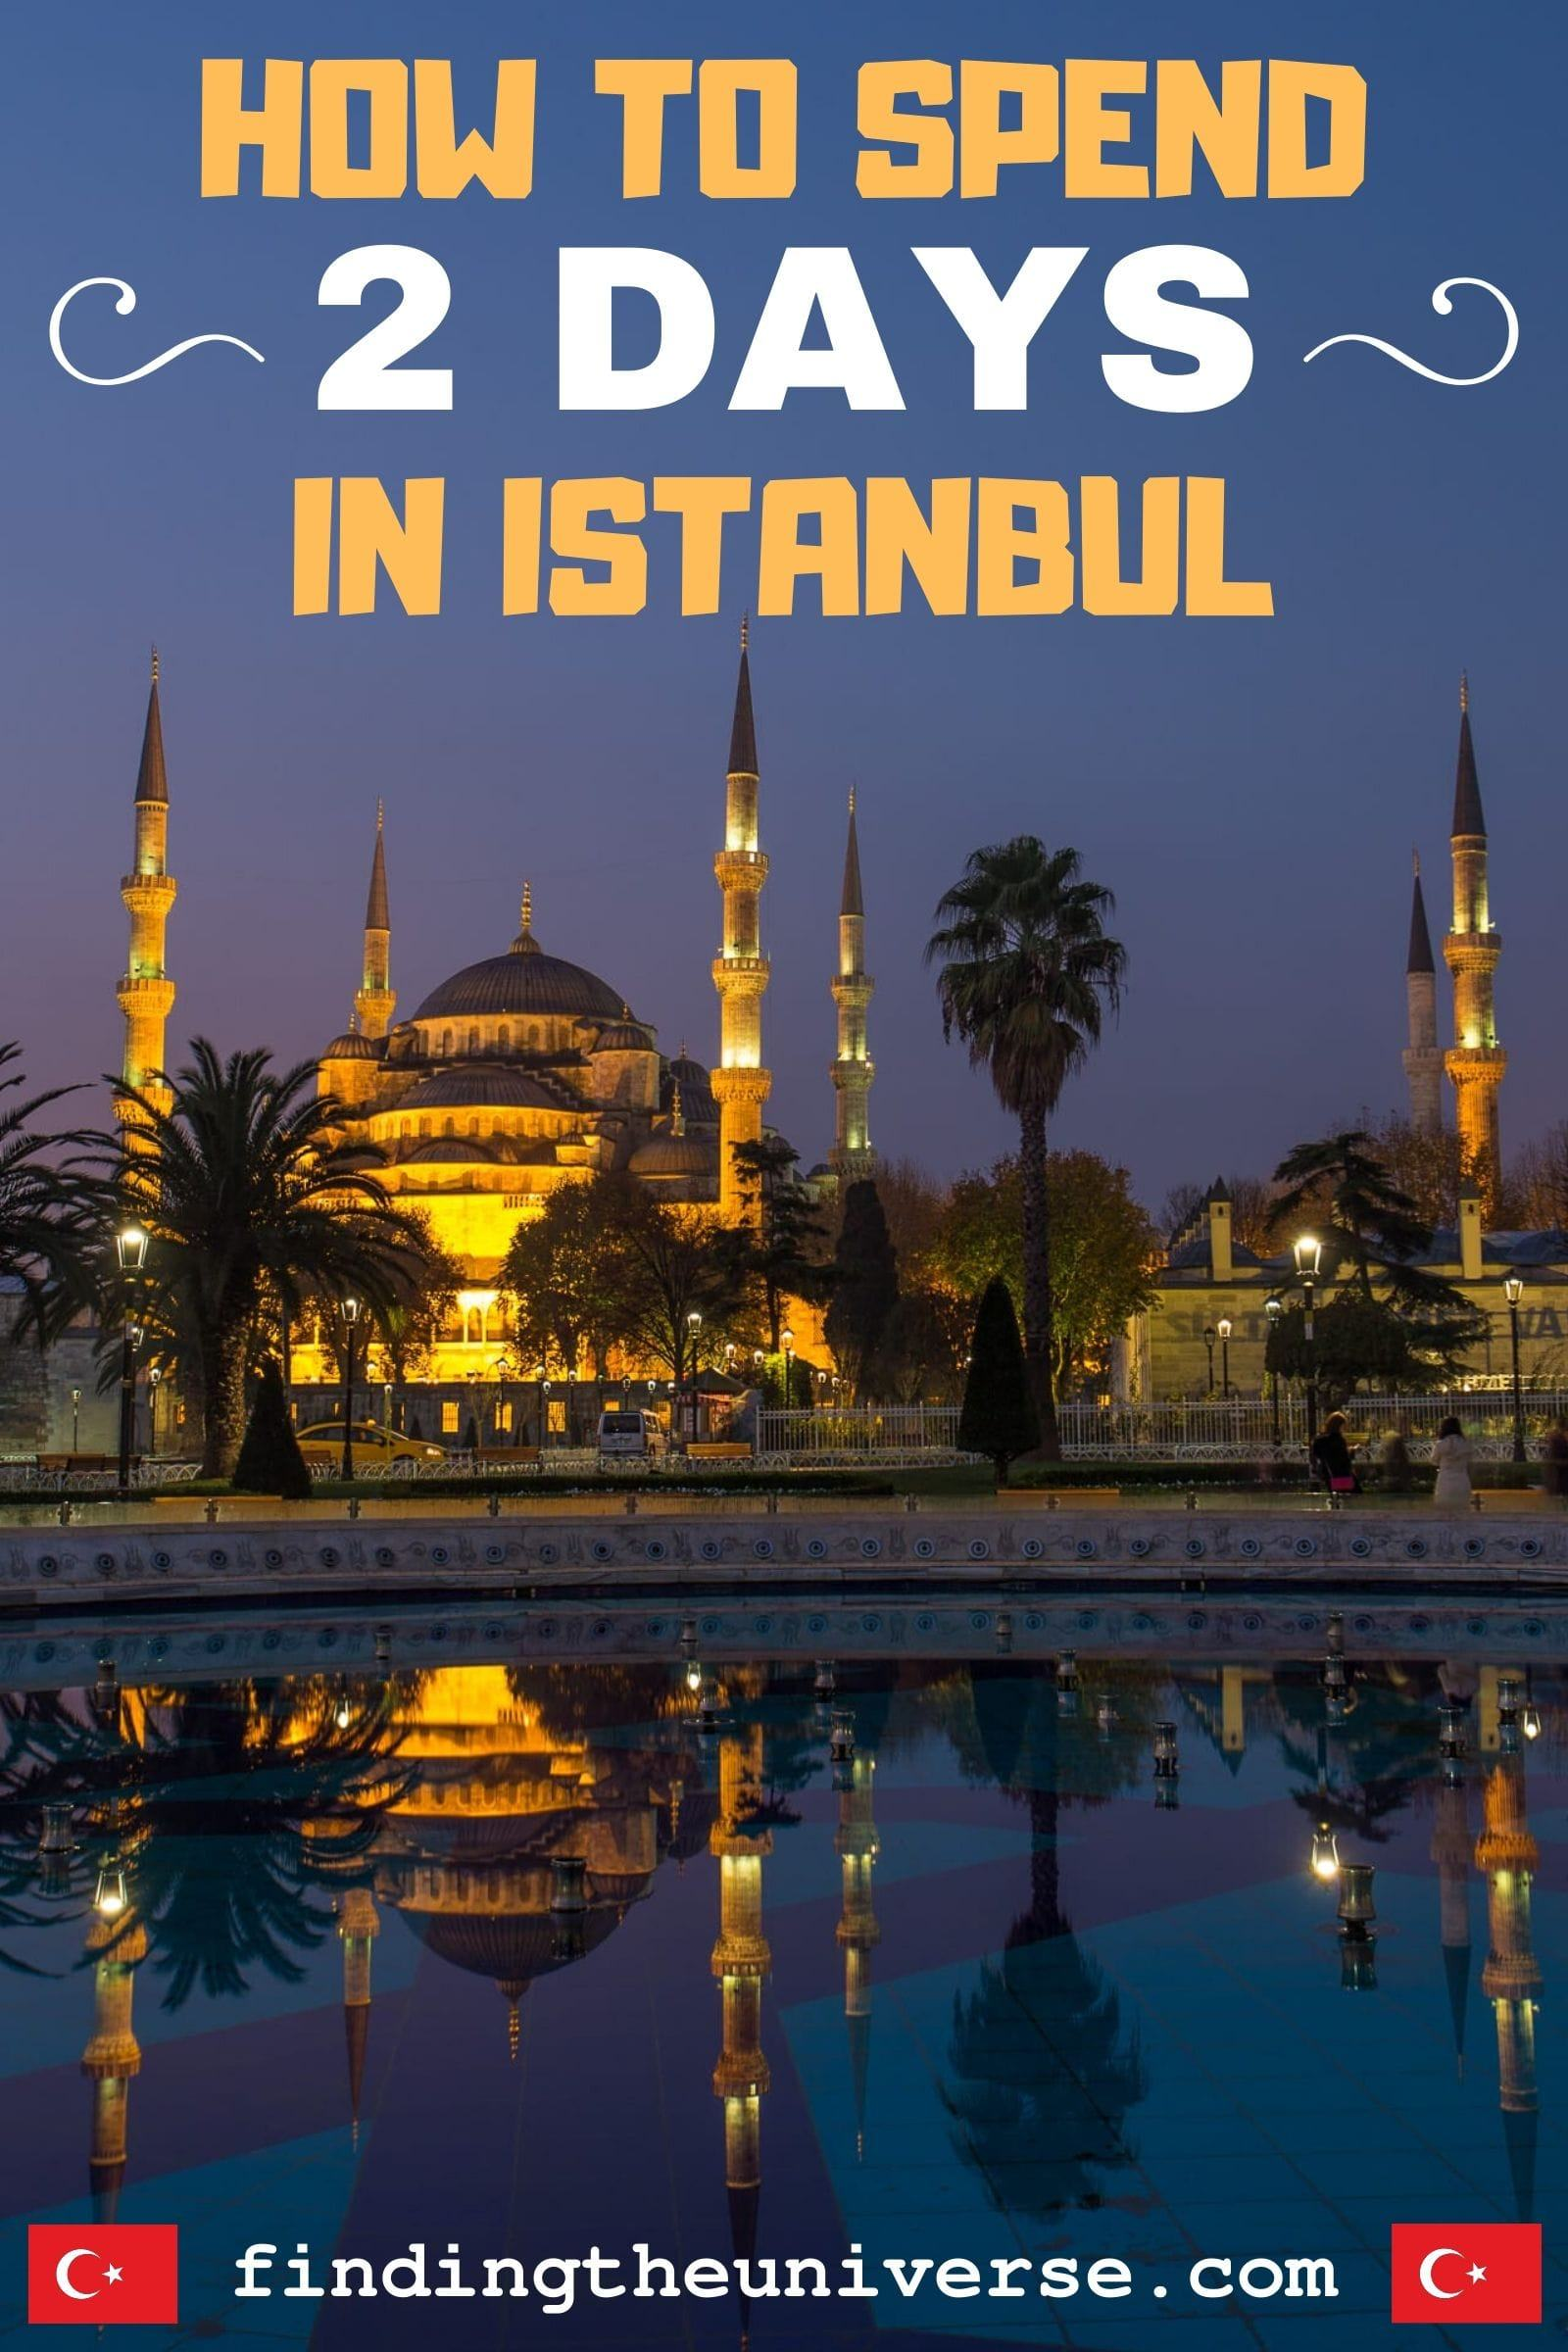 A detailed guide to spending 2 days in Istanbul. Contains a complete 2 day Istanbul itinerary, as well as a map and tips for your visit